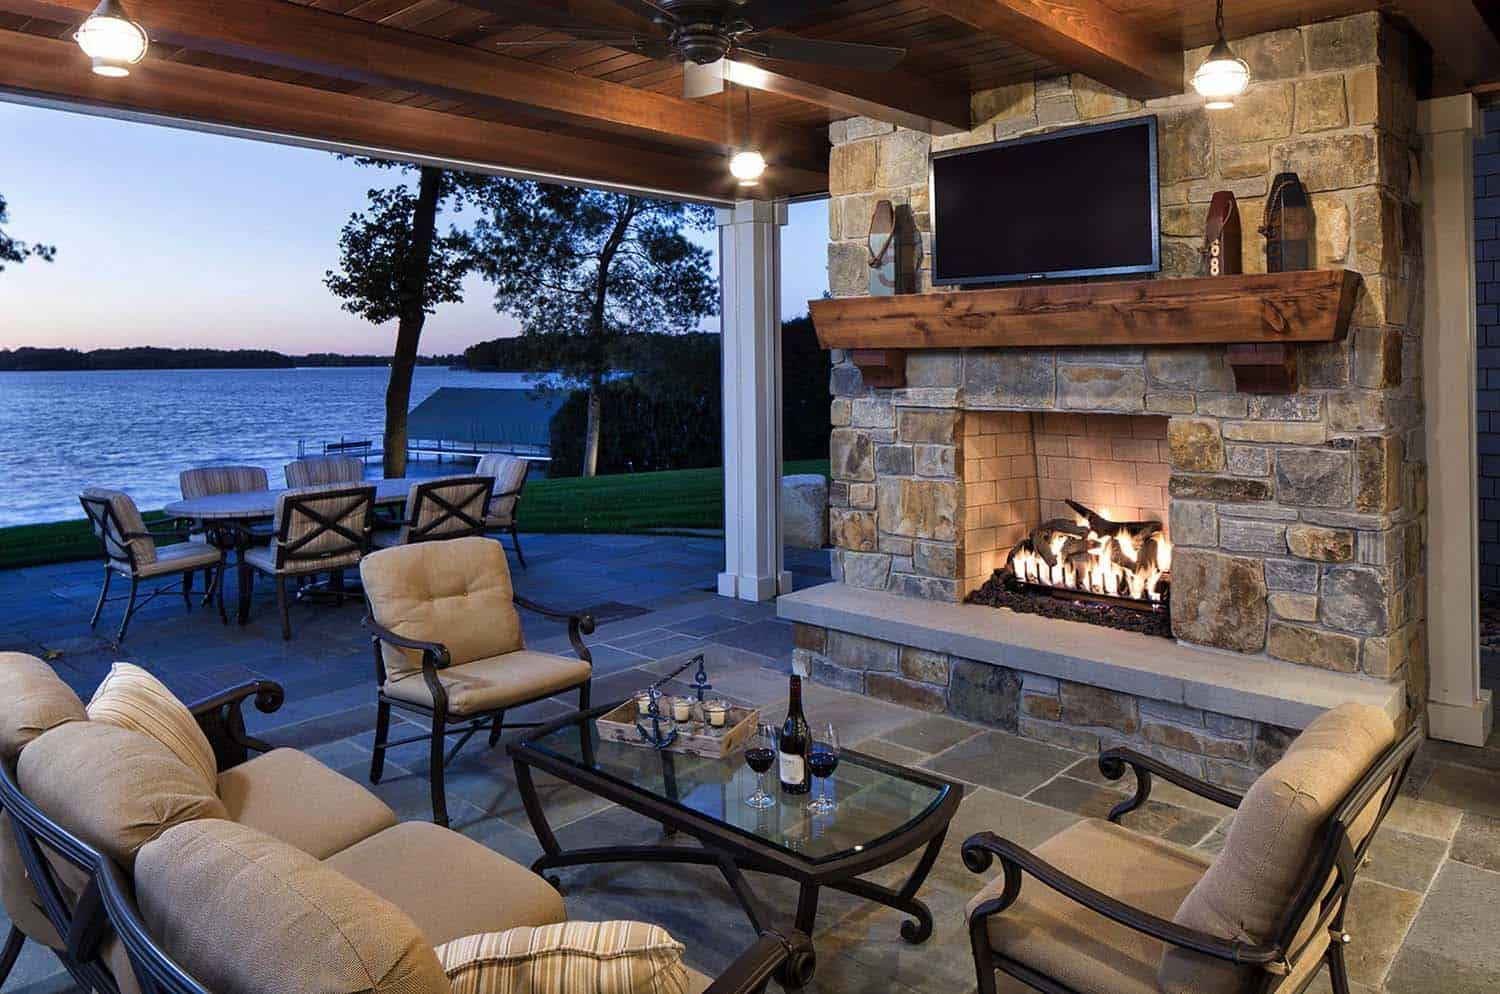 38 Fabulous Ideas For Creating Beautiful Outdoor Living Spaces Beautiful Outdoor Living Spaces Outdoor Living Areas Outdoor Living Space